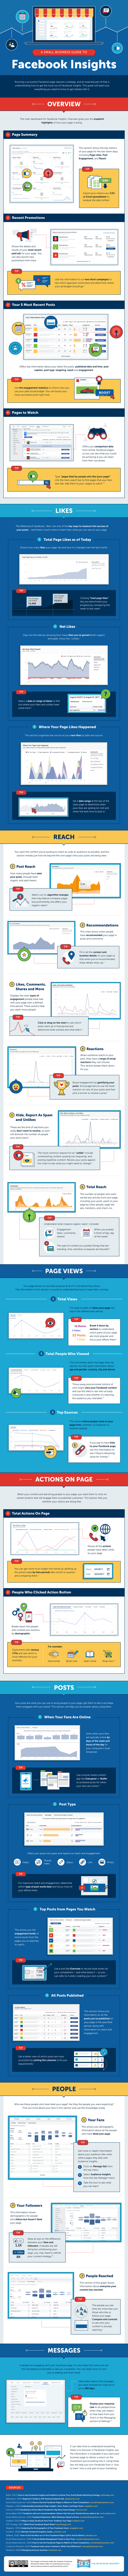 How Facebook Insights Works for Stronger Customer Connect - Infographic